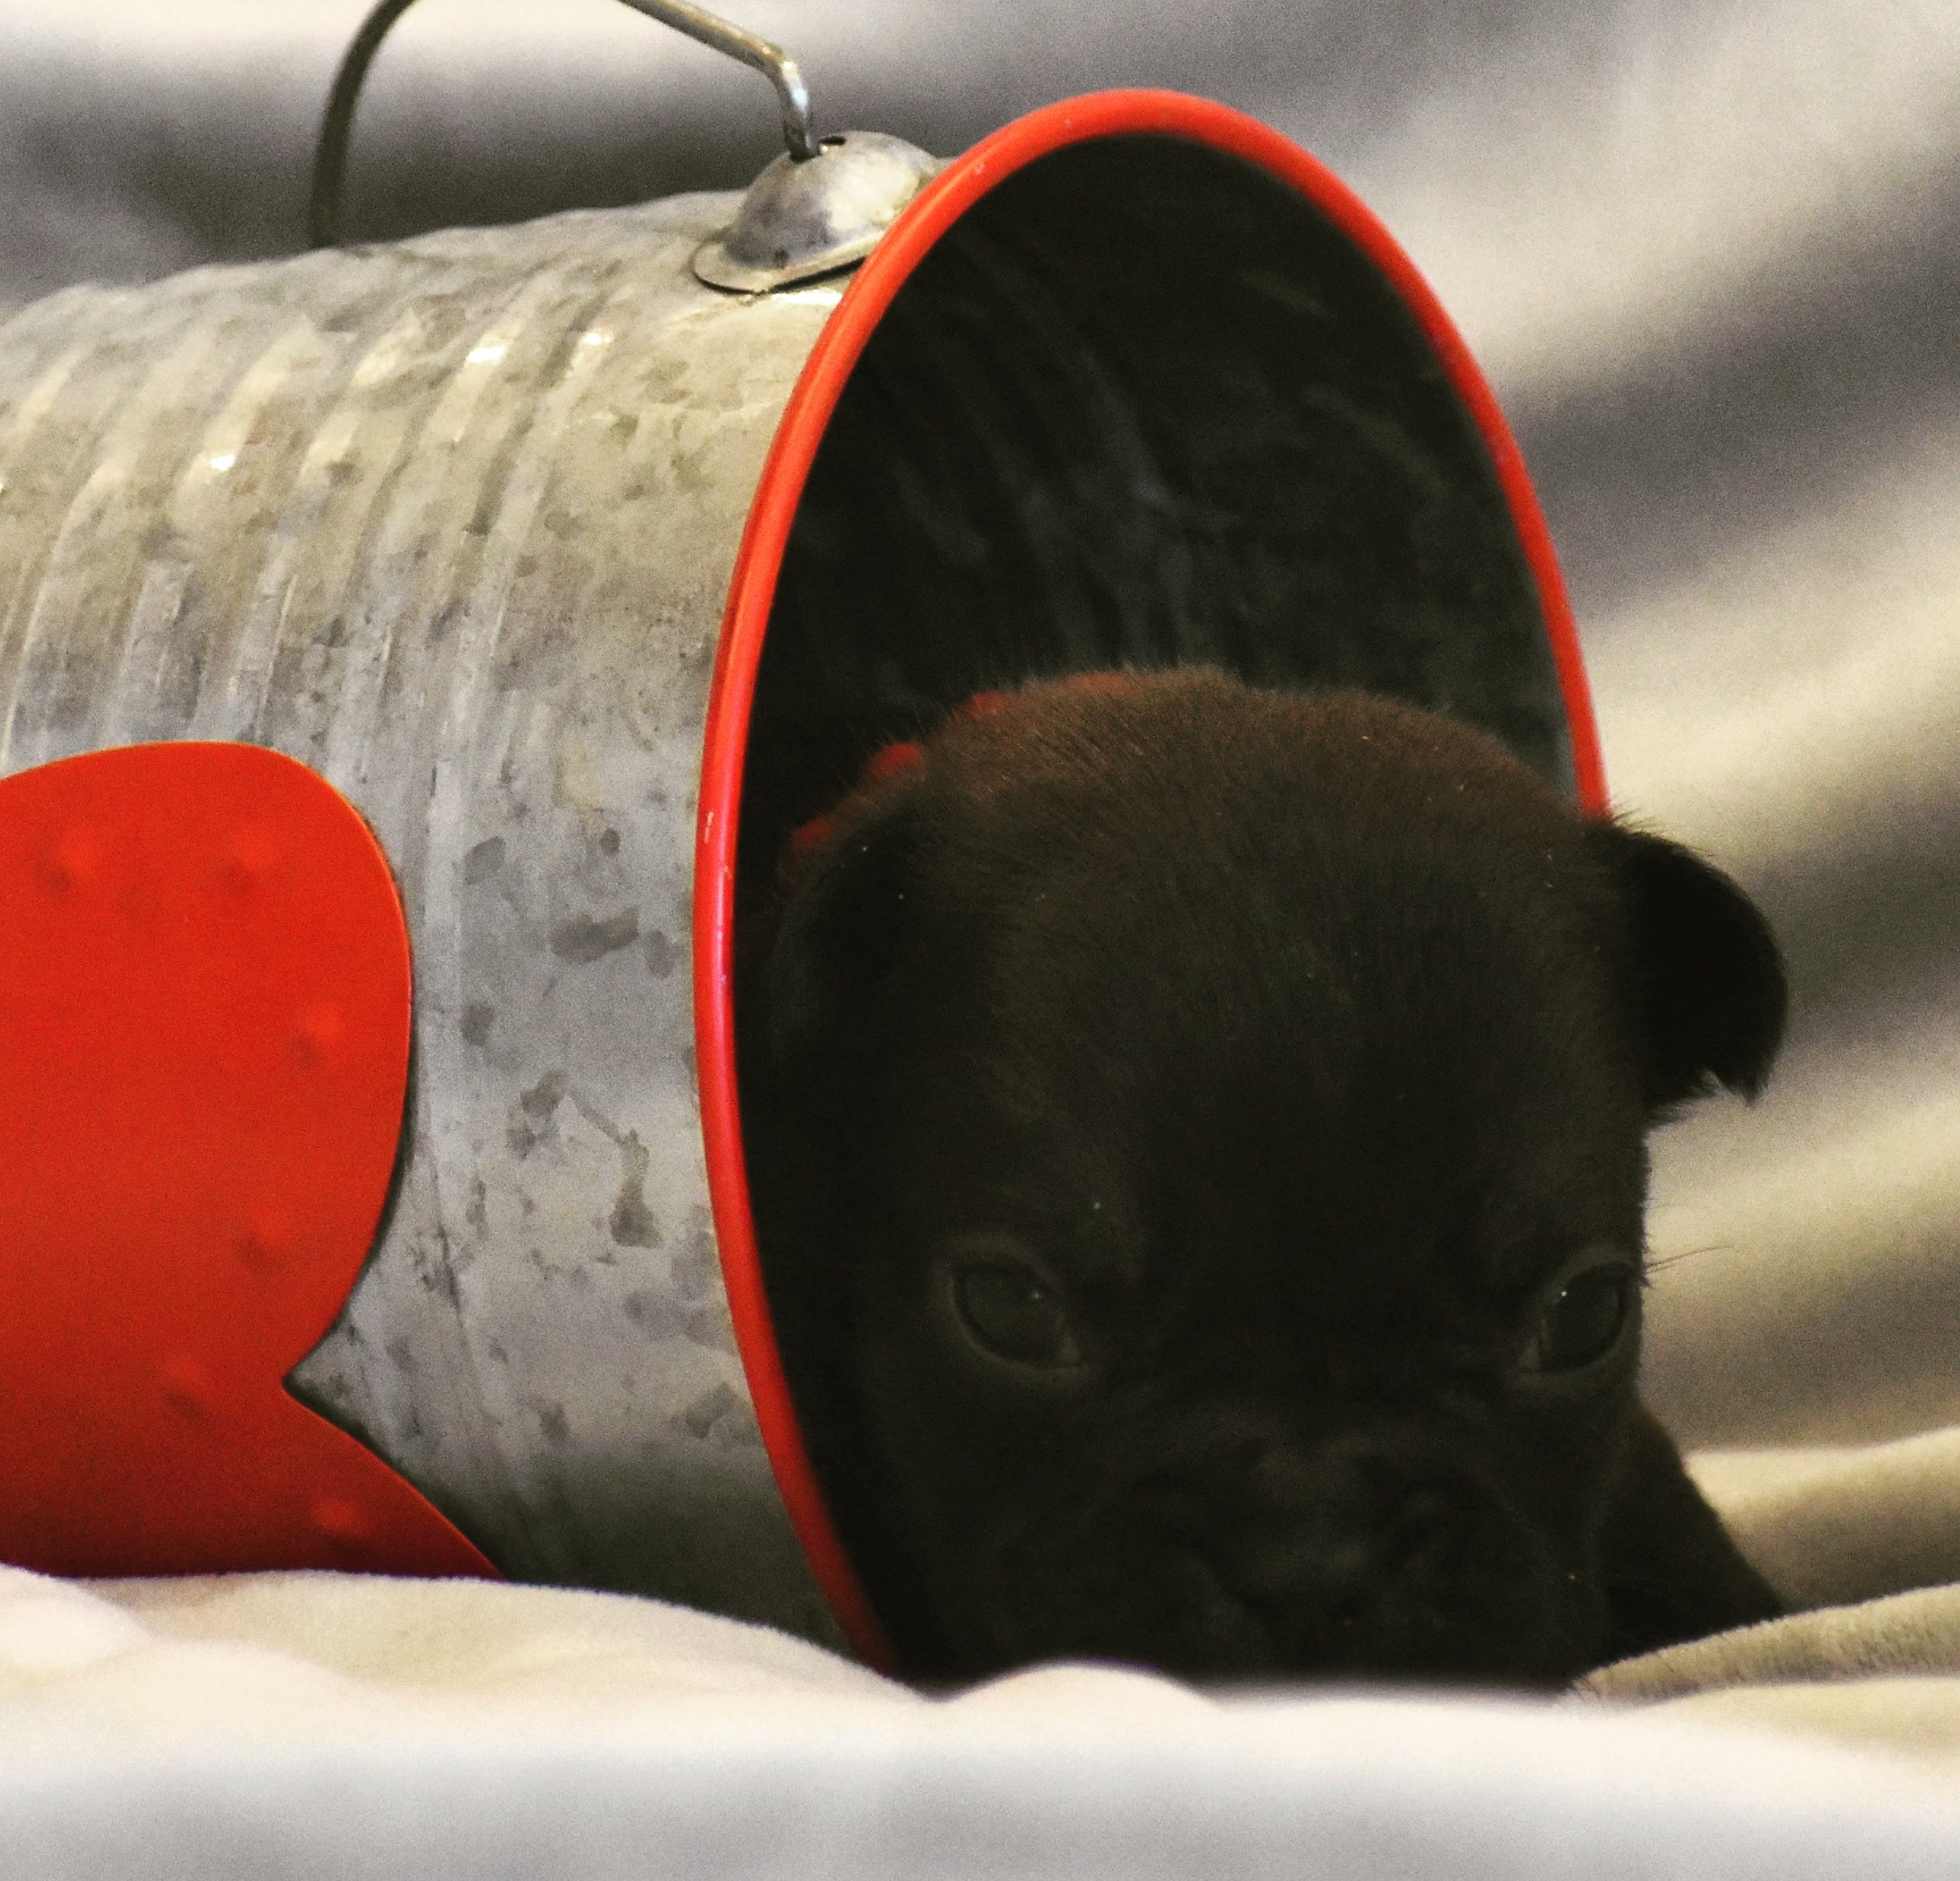 French Bulldog in Cup Falling Over